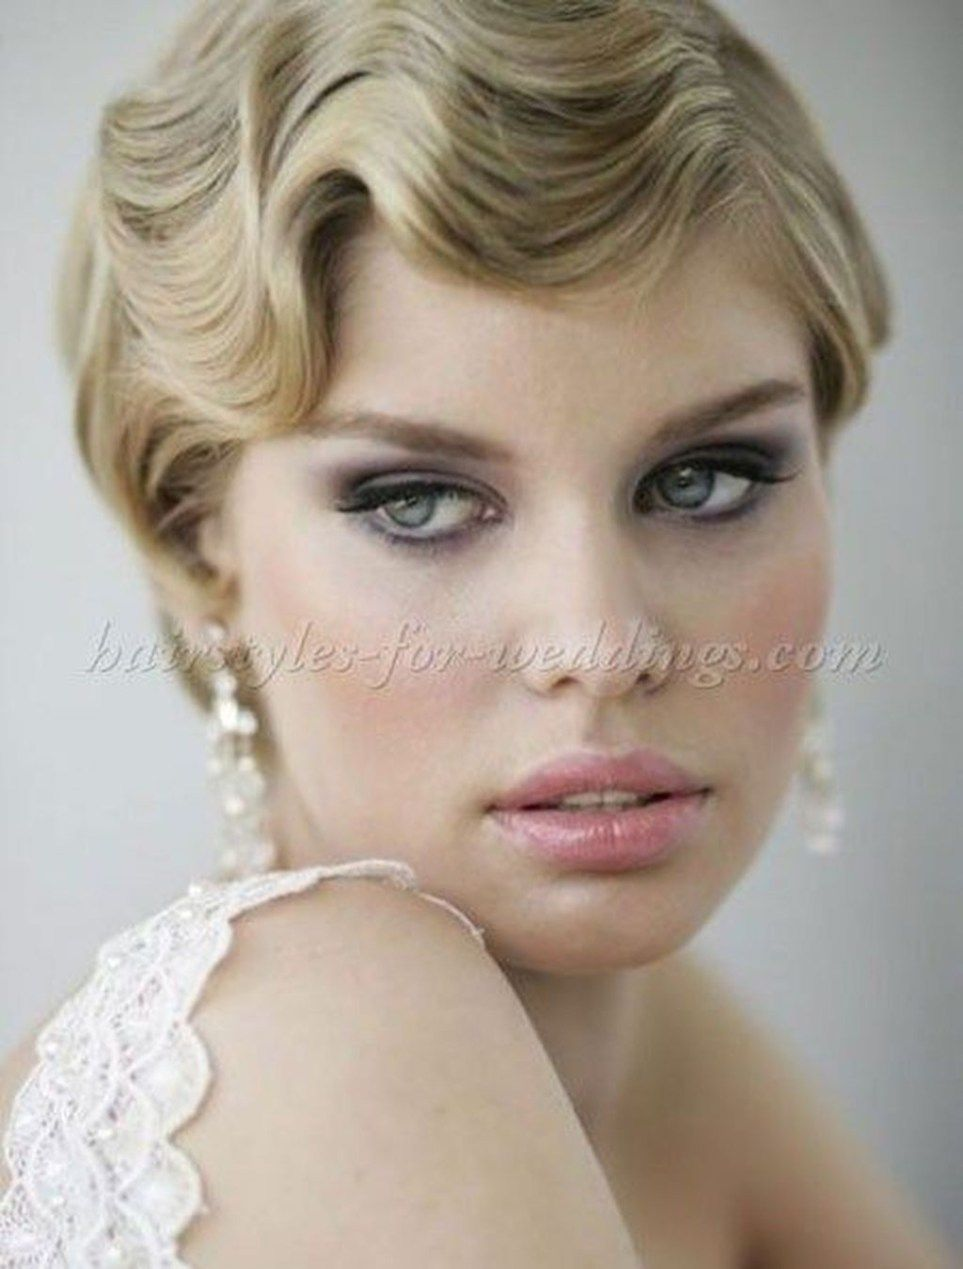 44 Latest Gatsby Hairstyles Ideas For Short Hair Addicfashion Gatsby Hair Short Wedding Hair Hair Styles